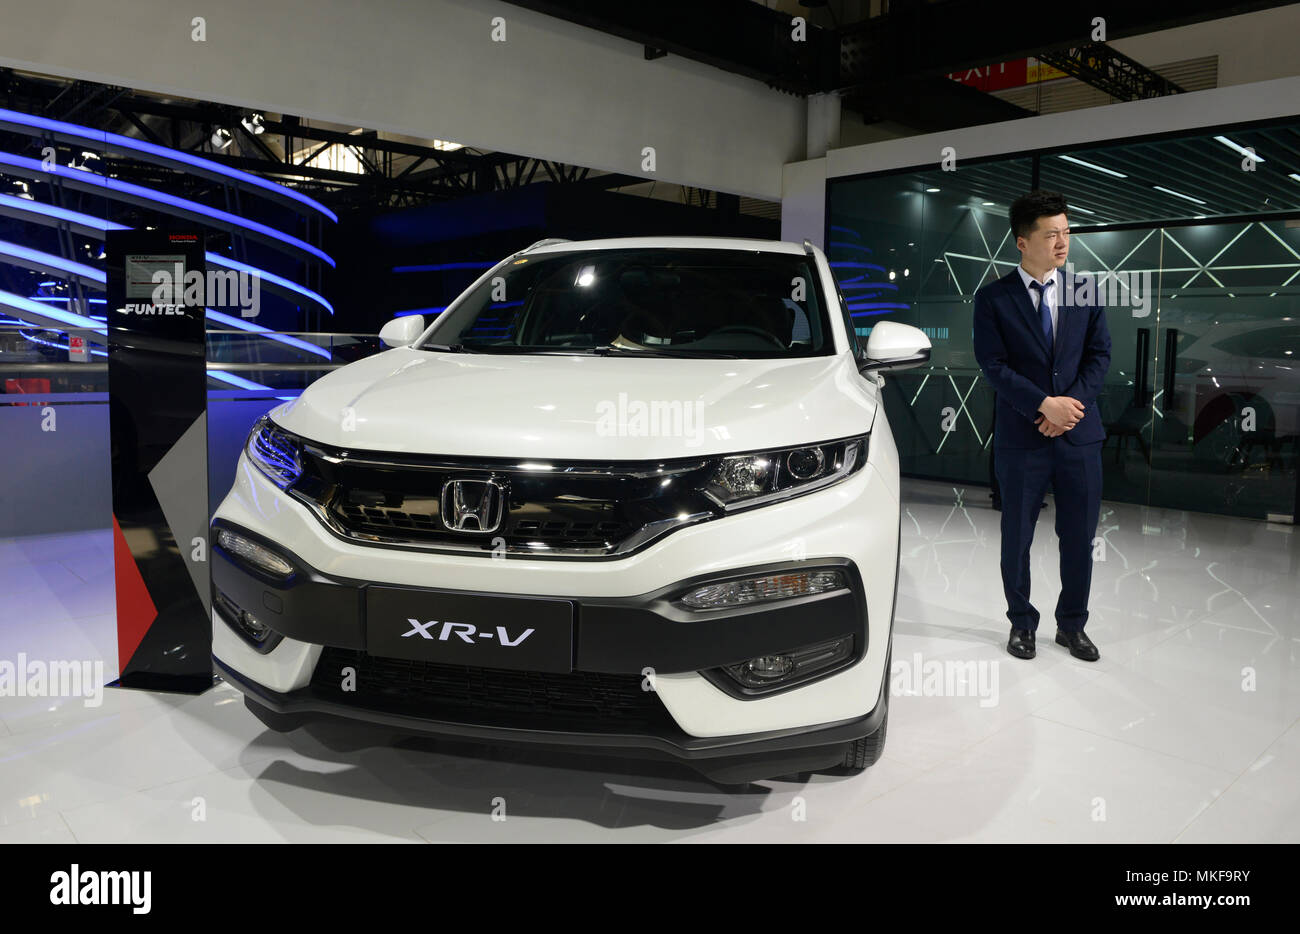 The new Honda XR-V, which is exclusively for the China market, on the Dongfeng Honda stand at the Auto China 2018 motorshow in Beijing - Stock Image